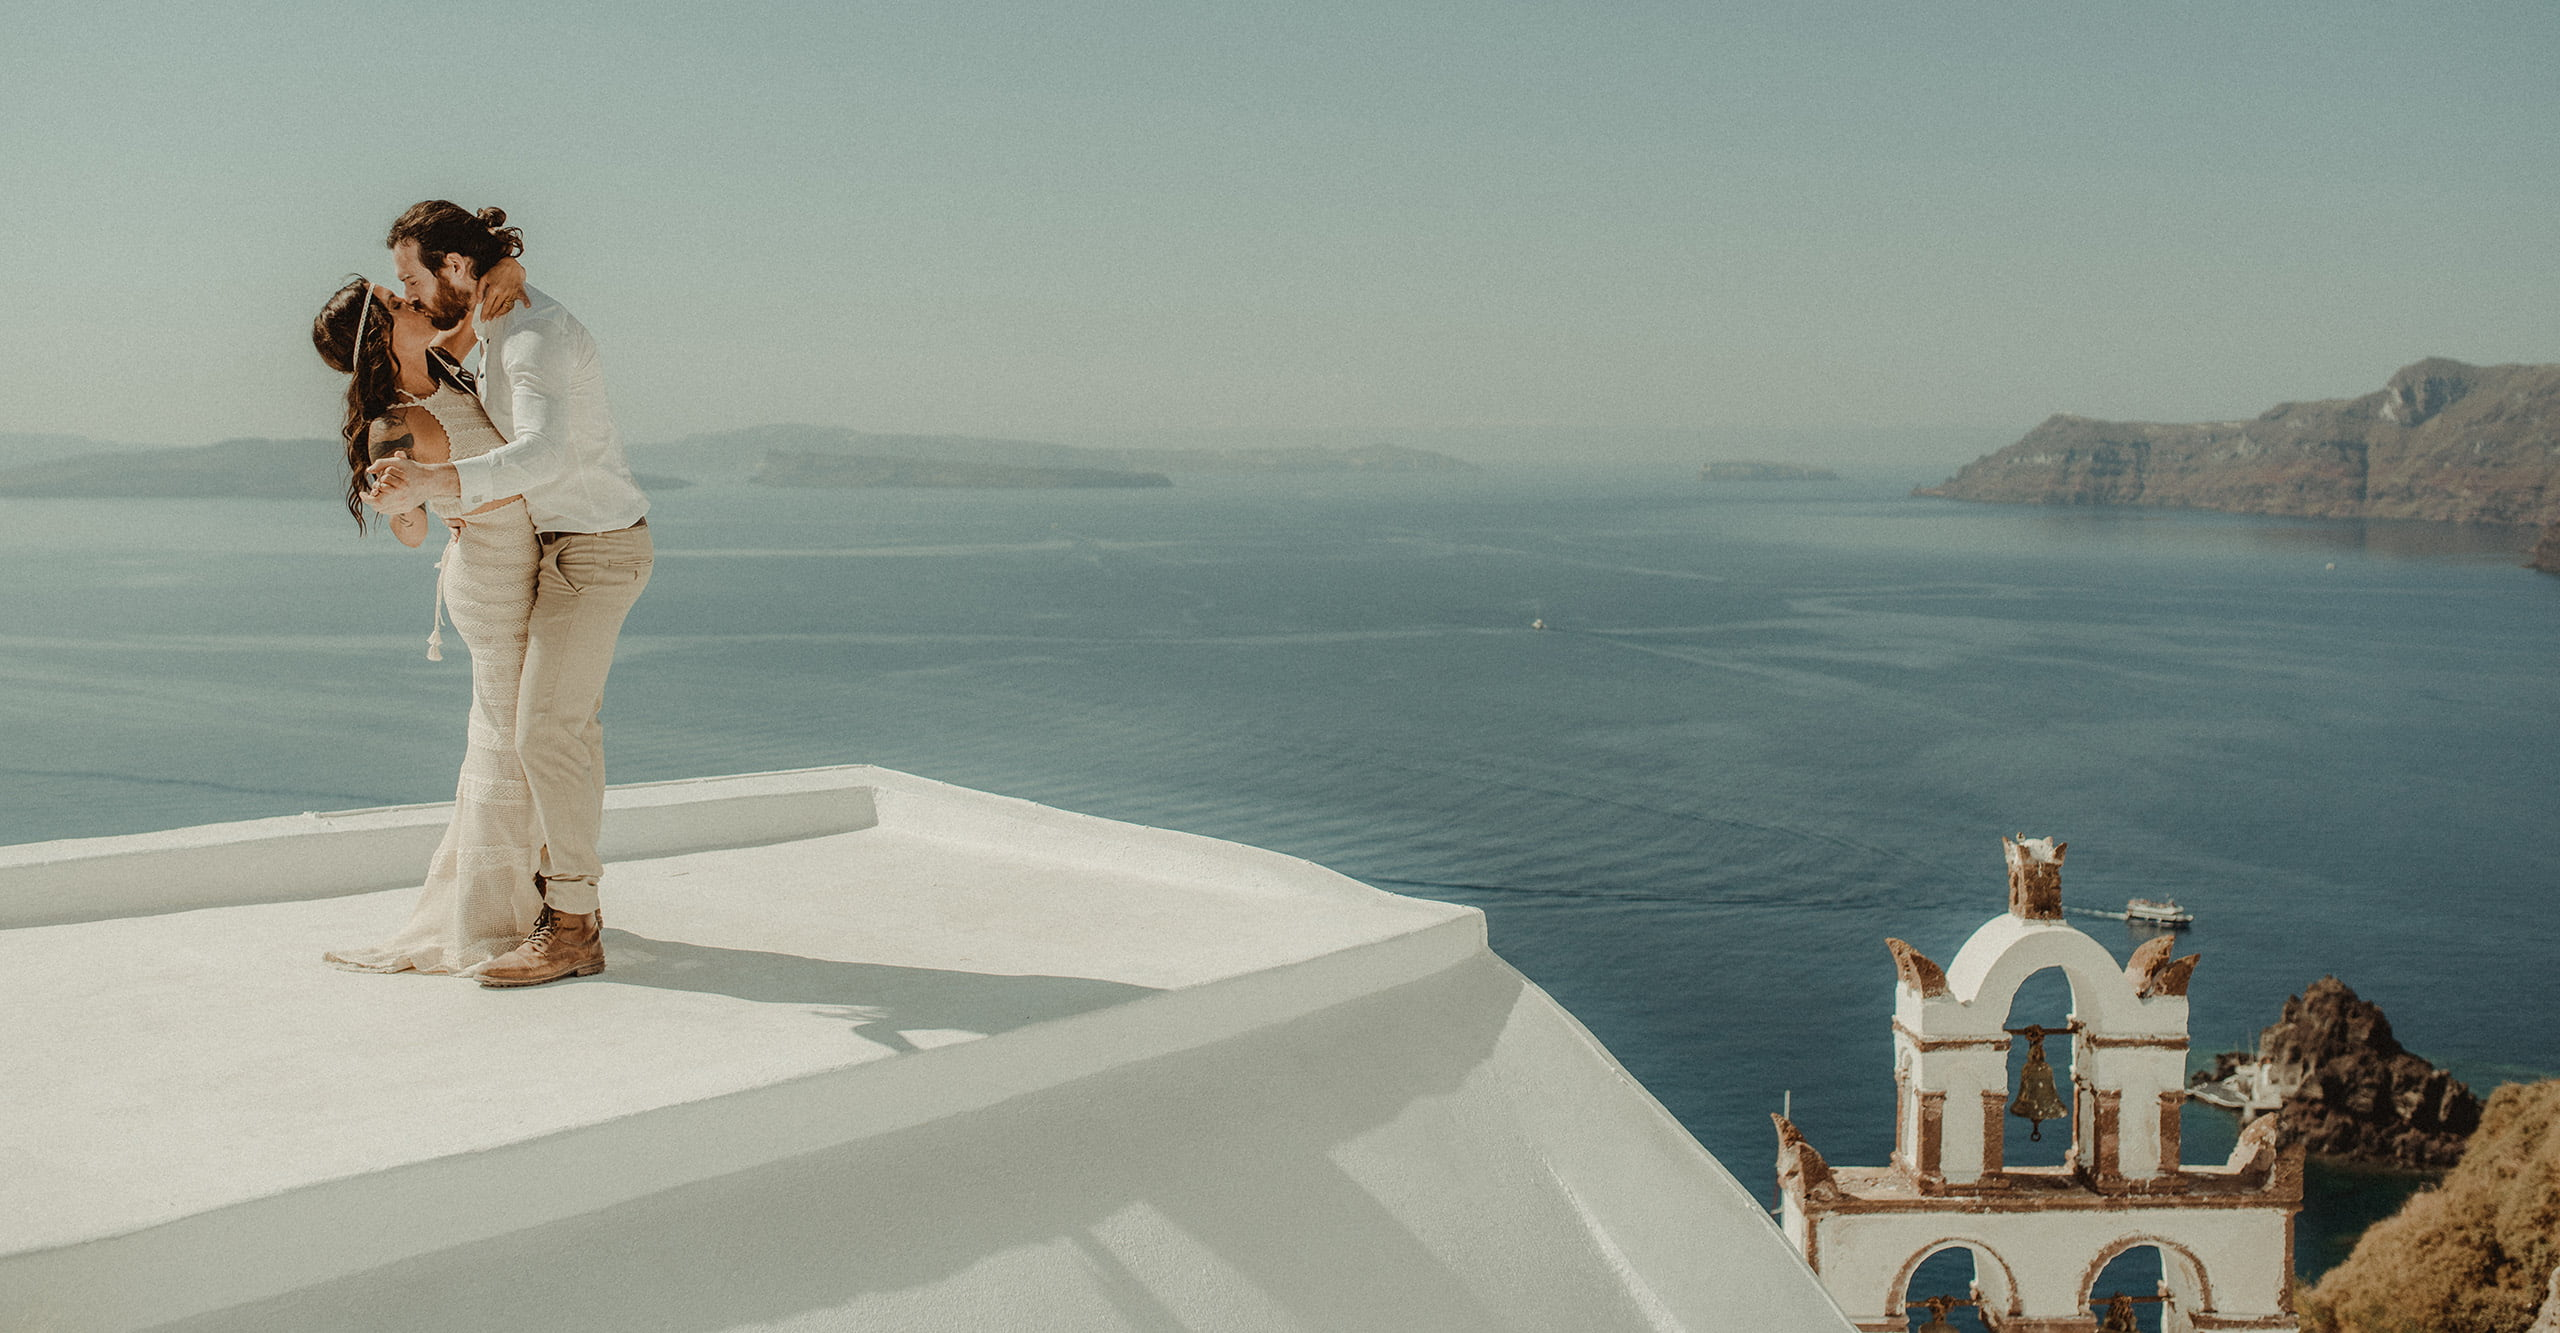 Santorini Elopement filmed by Wedding filmmaker Kostas Petsas